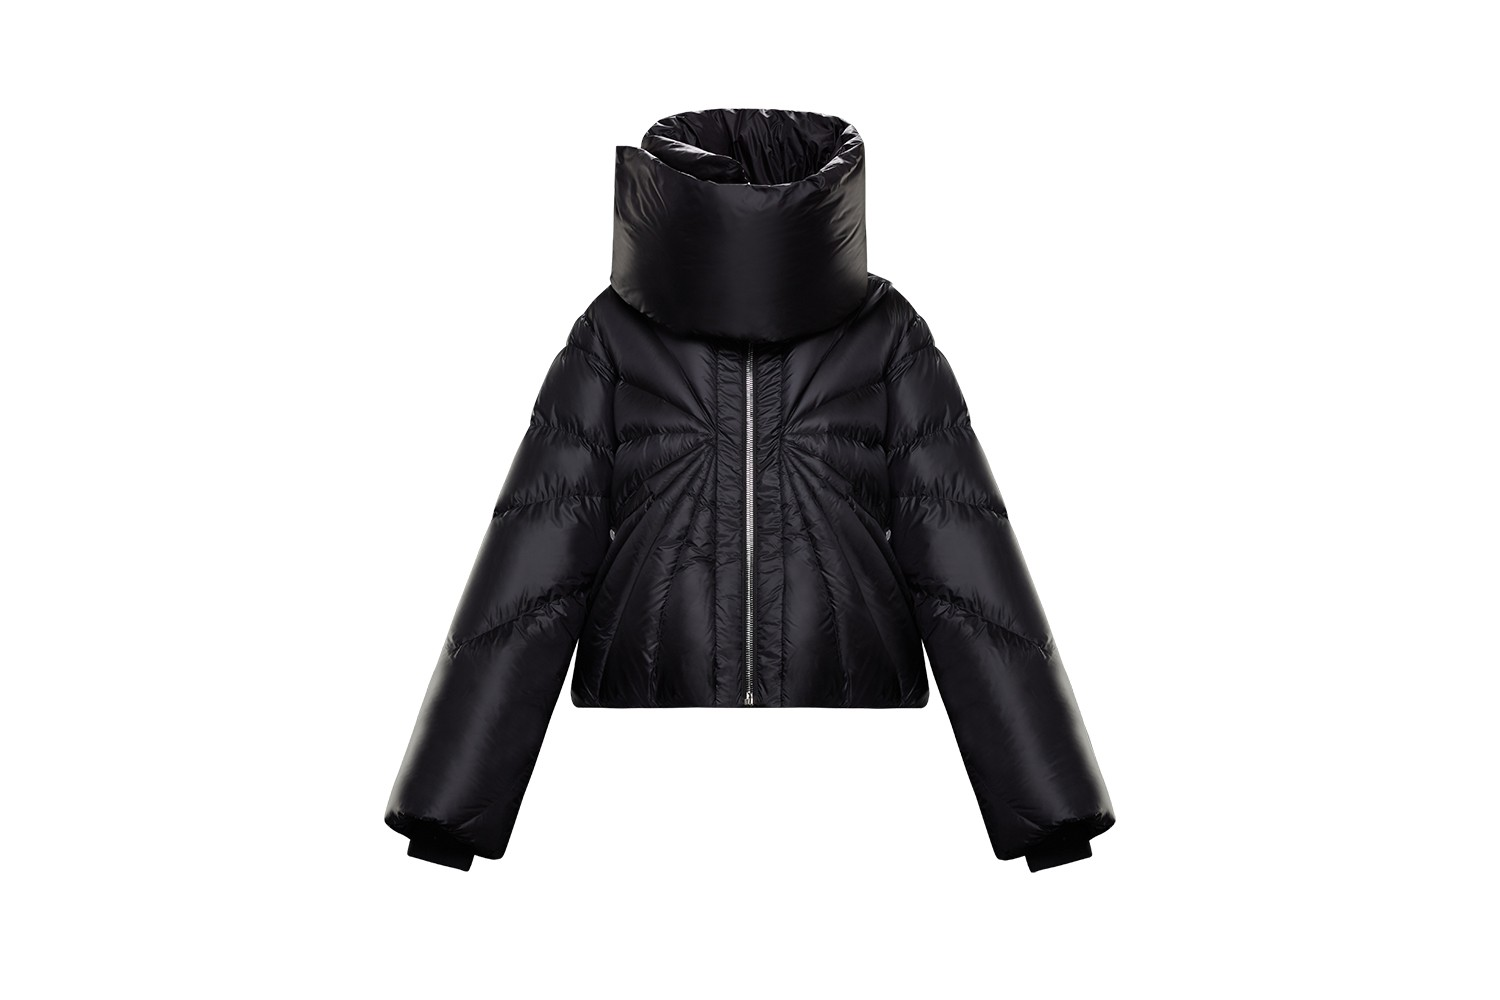 Moncler Rick Owens Collection Full Look Release Info Lookbooks Date Buy Price Michele Lamy